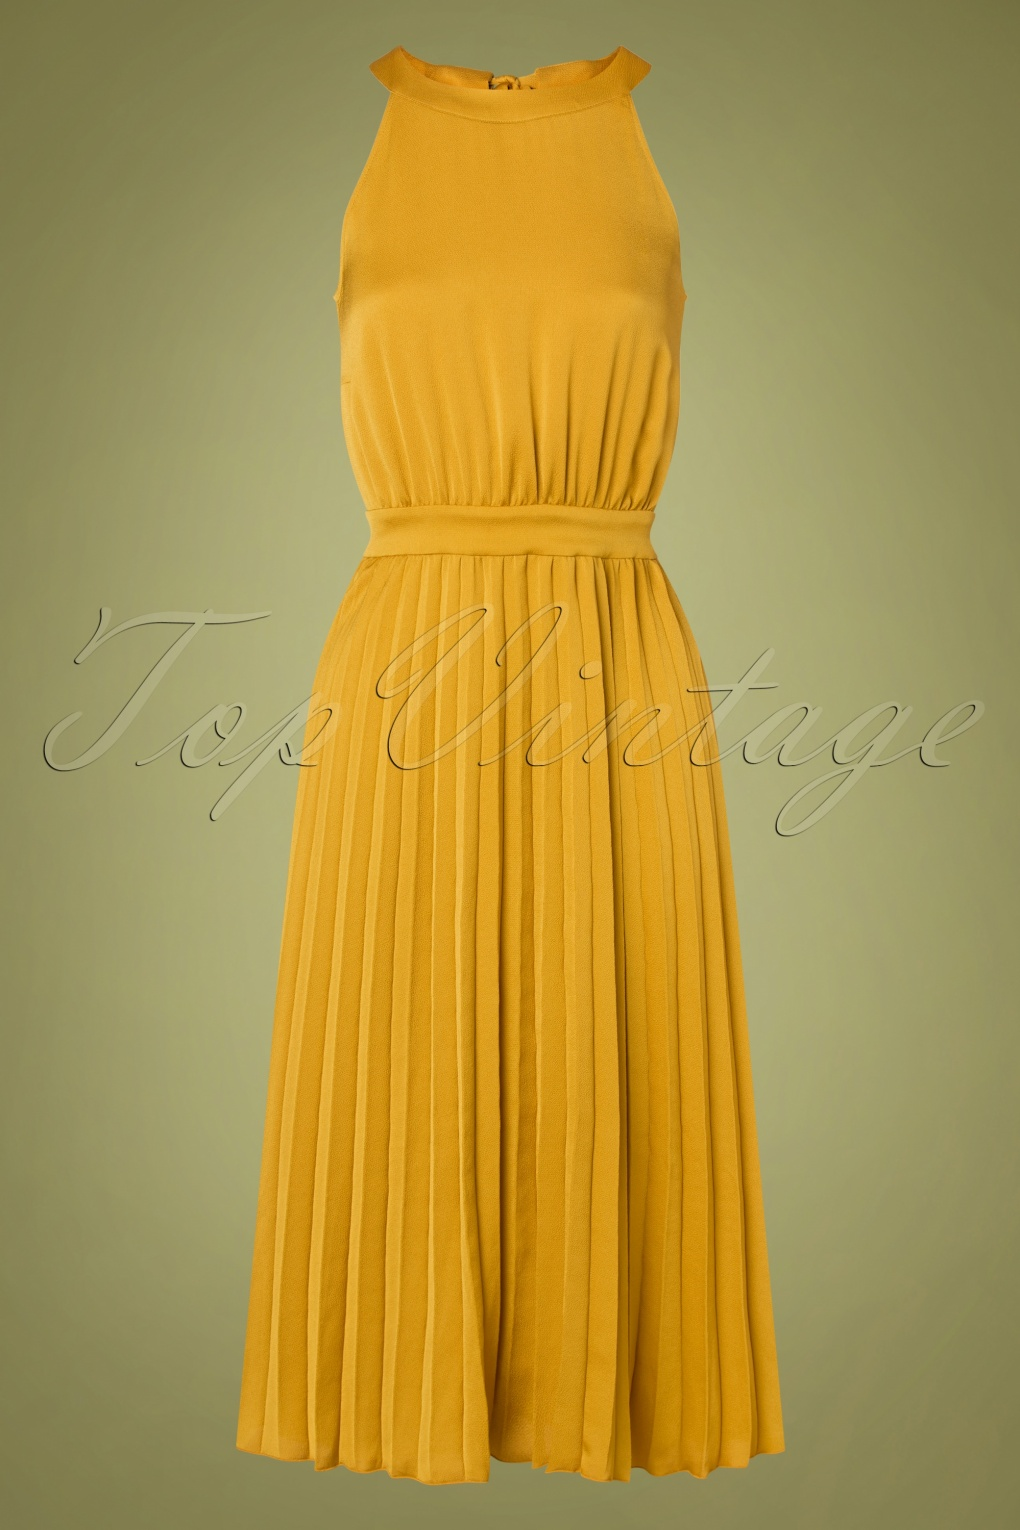 70s Prom, Formal, Evening, Party Dresses 60s Danna Ginty Plisse Dress in Curry Yellow £88.84 AT vintagedancer.com